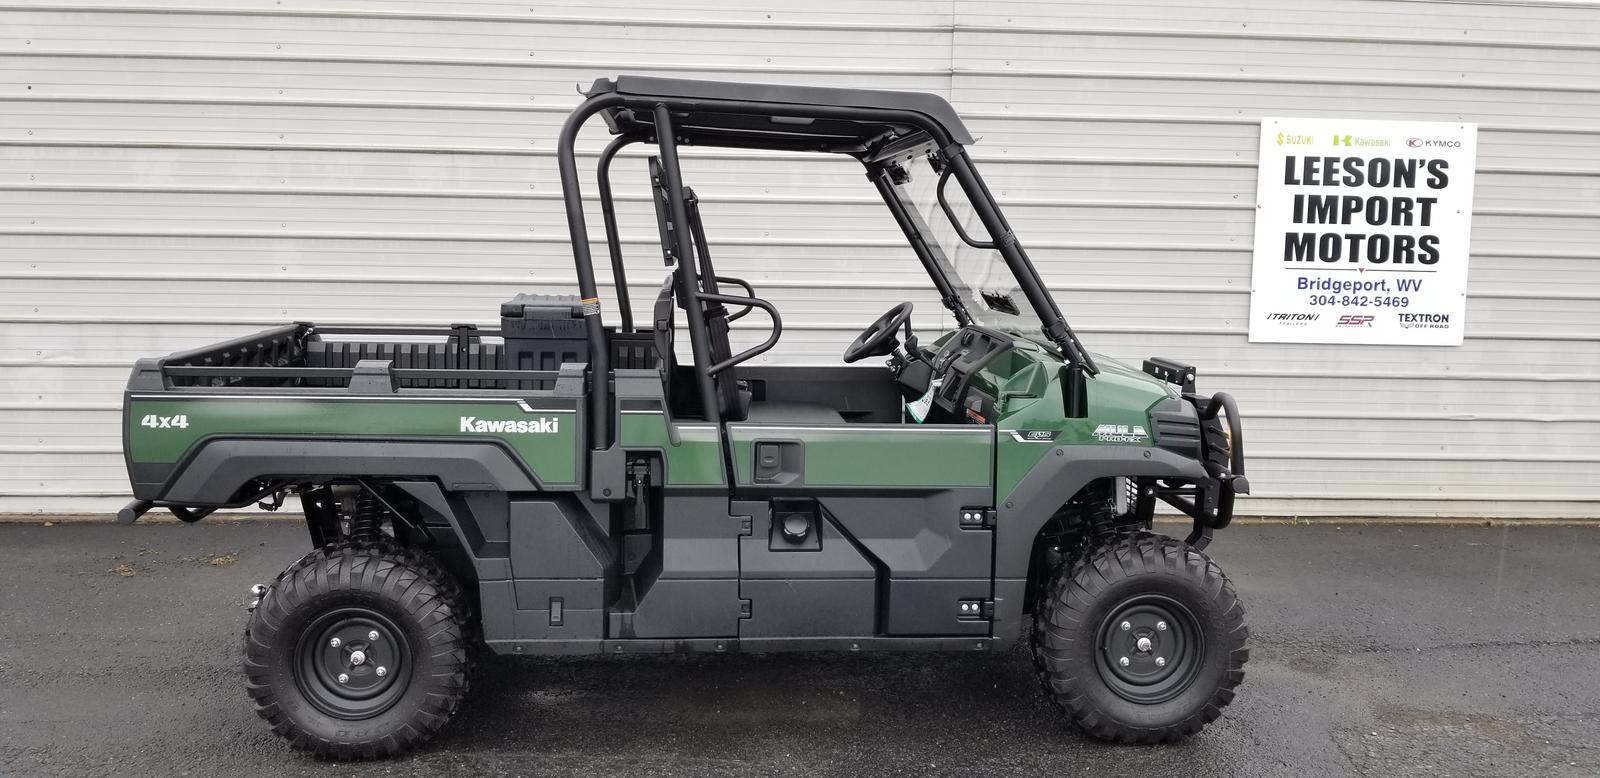 hight resolution of 2019 kawasaki mule pro fx eps for sale in bridgeport wv leeson s import motors 844 533 7667